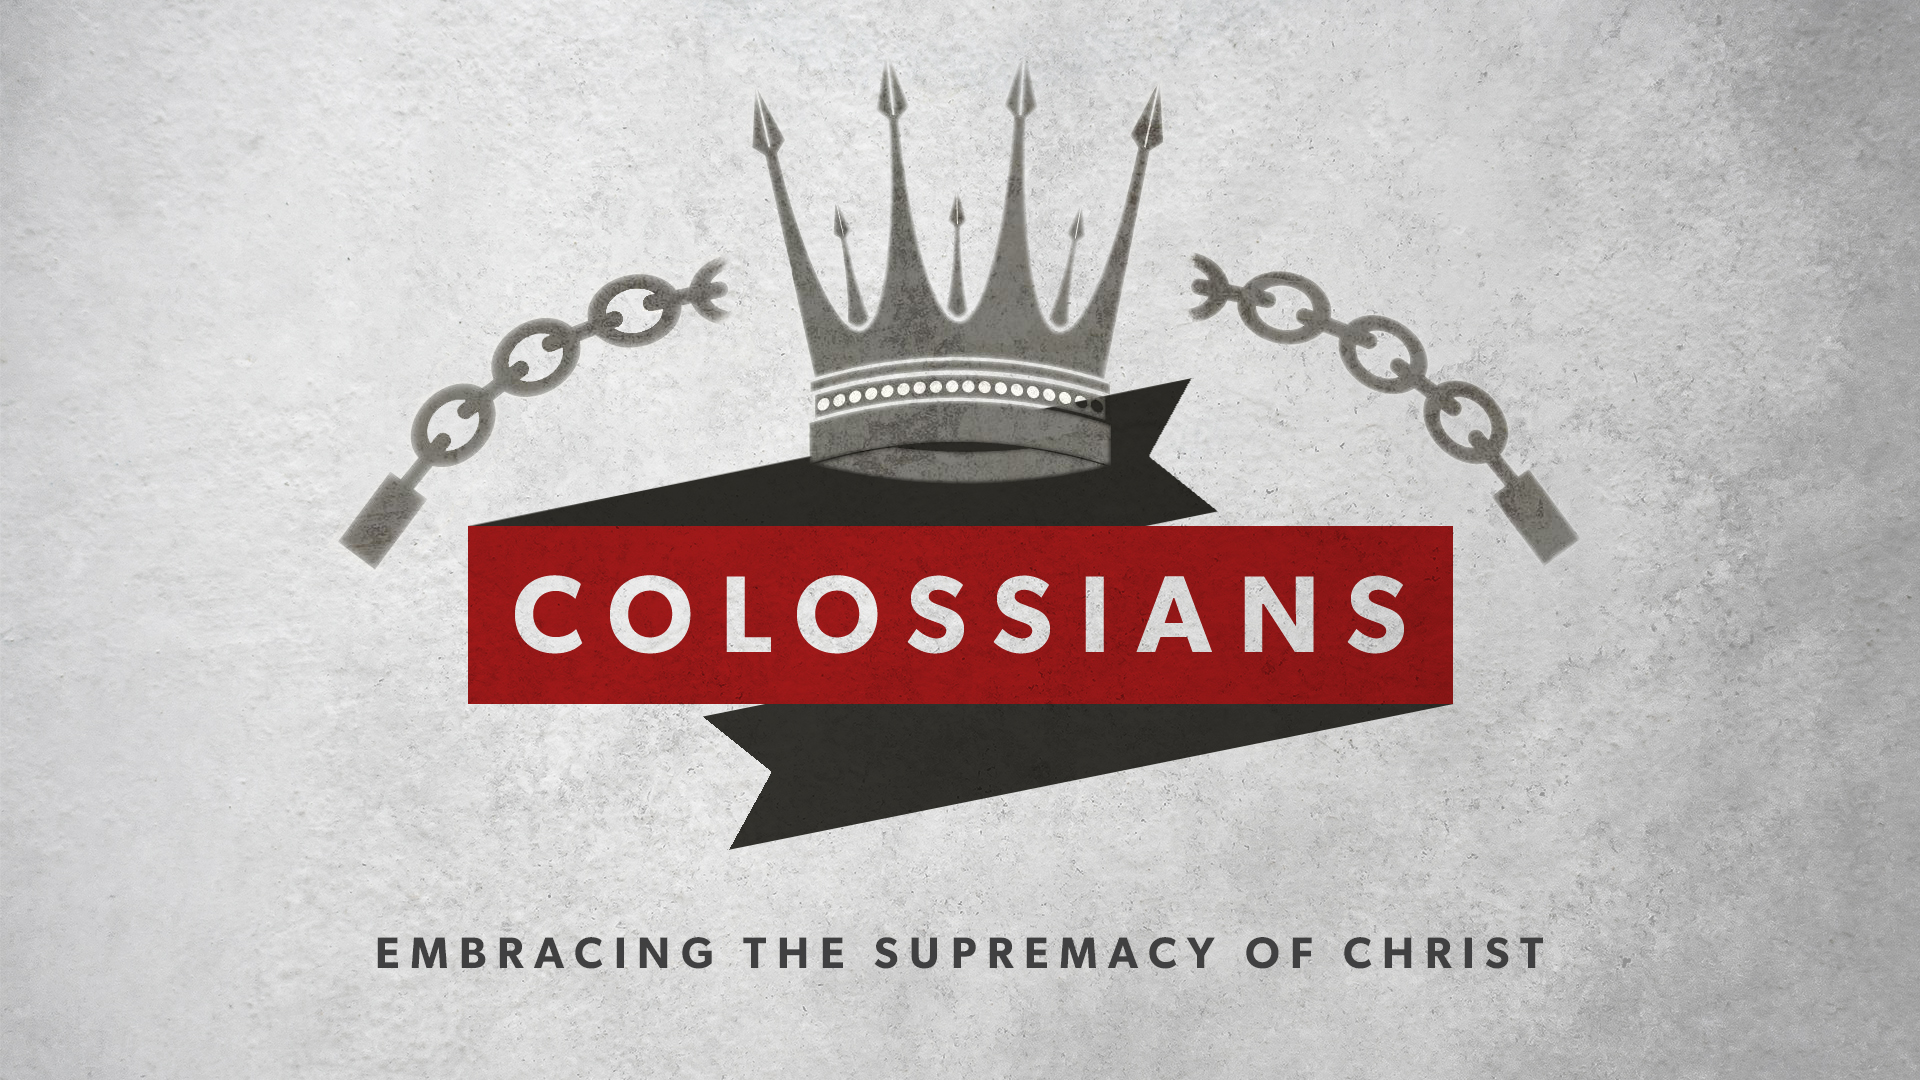 Colossians: Embracing the Supremacy of Christ